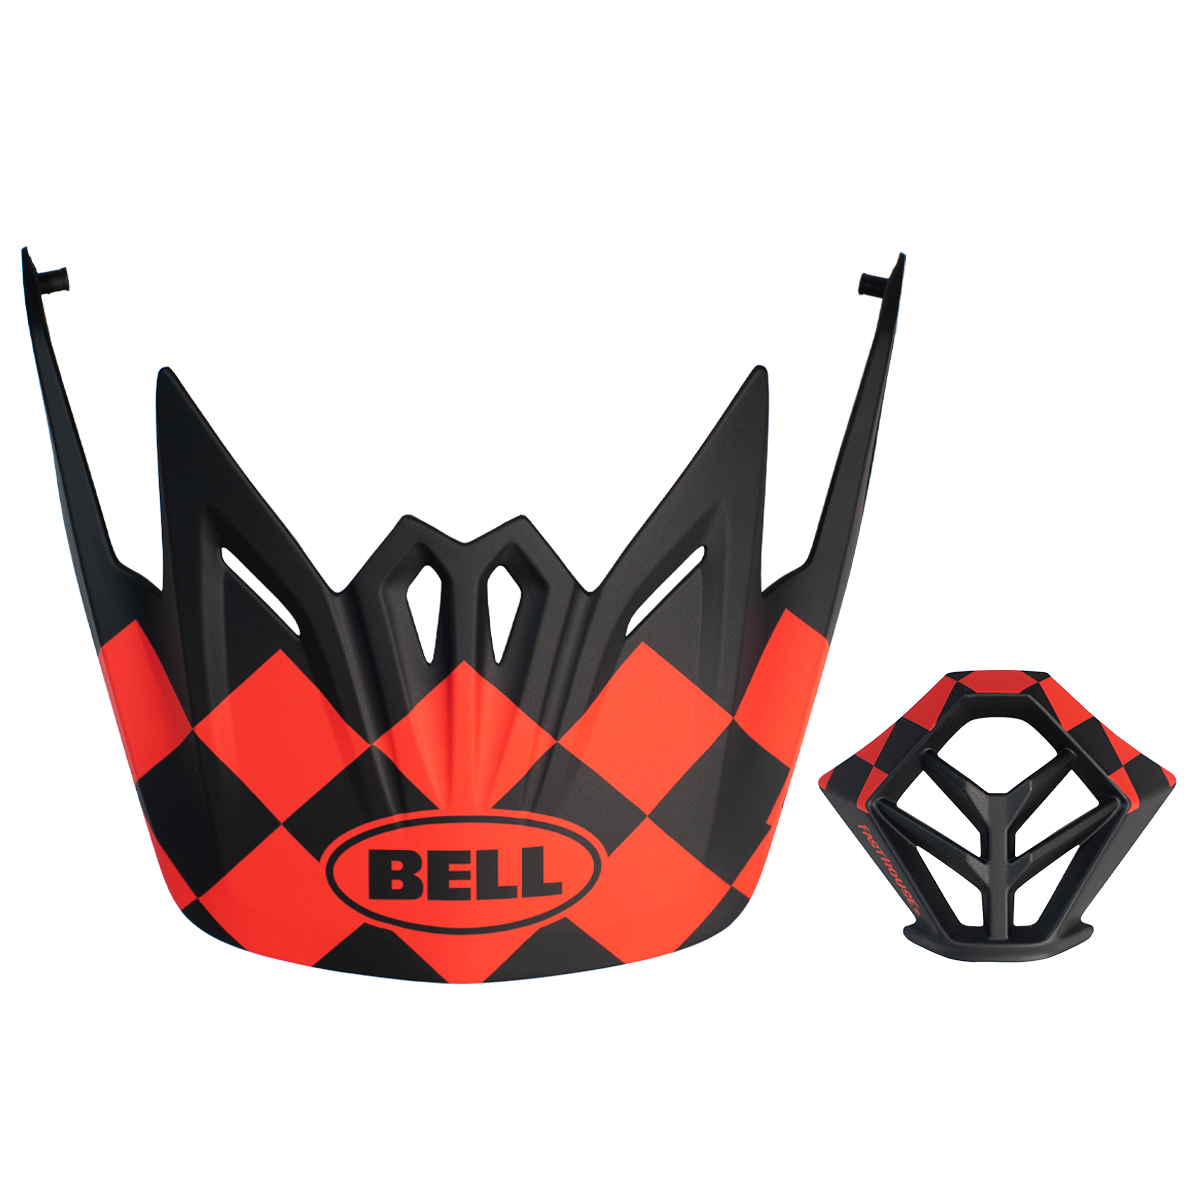 Bell Full-9 Checkers Visor + Mouthpiece Kit - Matte Red/Black